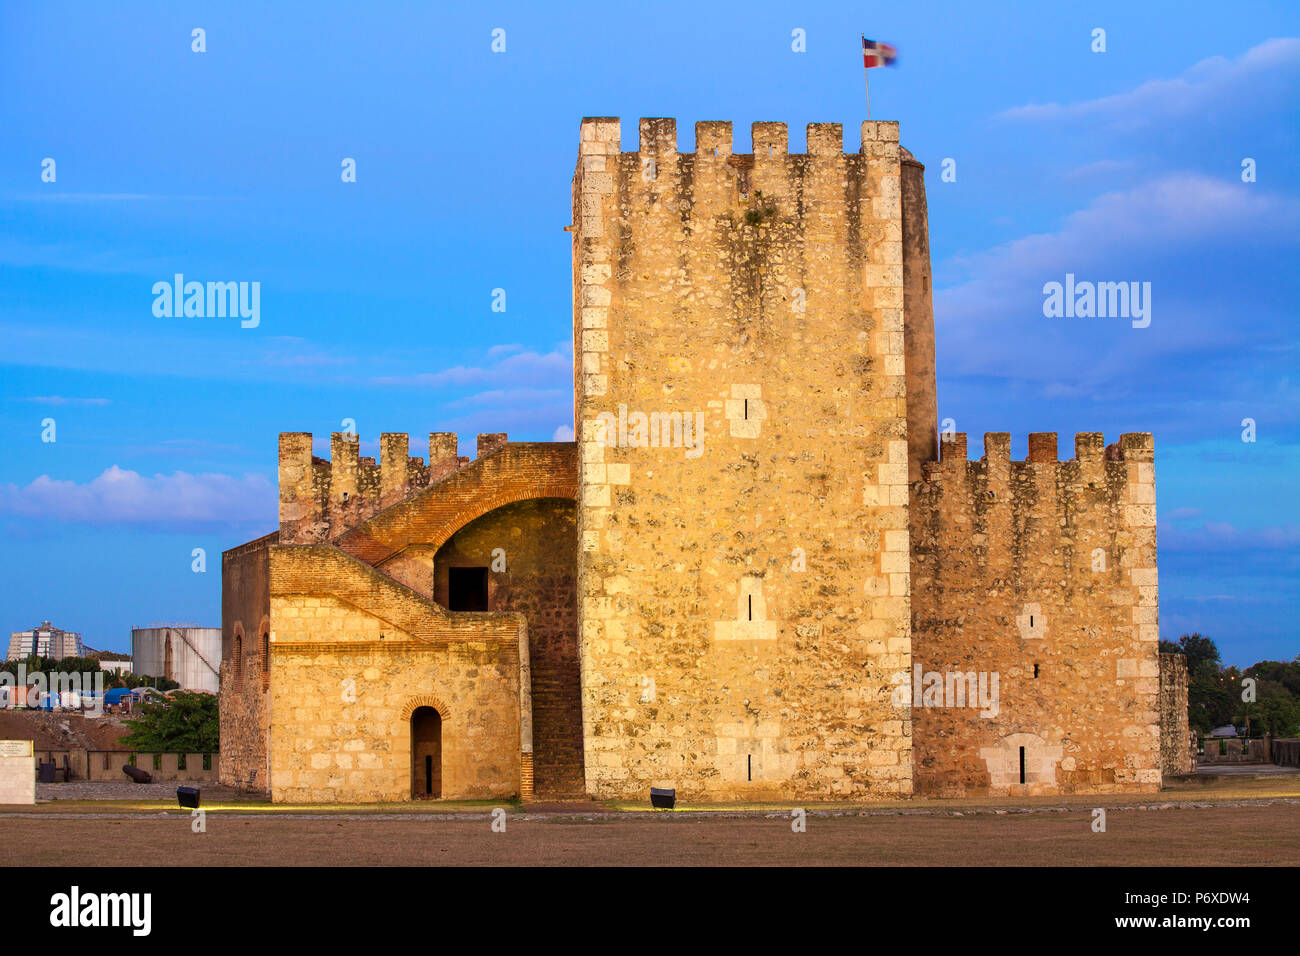 Dominican Republic, Santa Domingo, Colonial zone, Fortaleza Ozama, now the site of the Museo de Armas, a military musuem, Torre del Homenaje - Tower of Homage - Stock Image